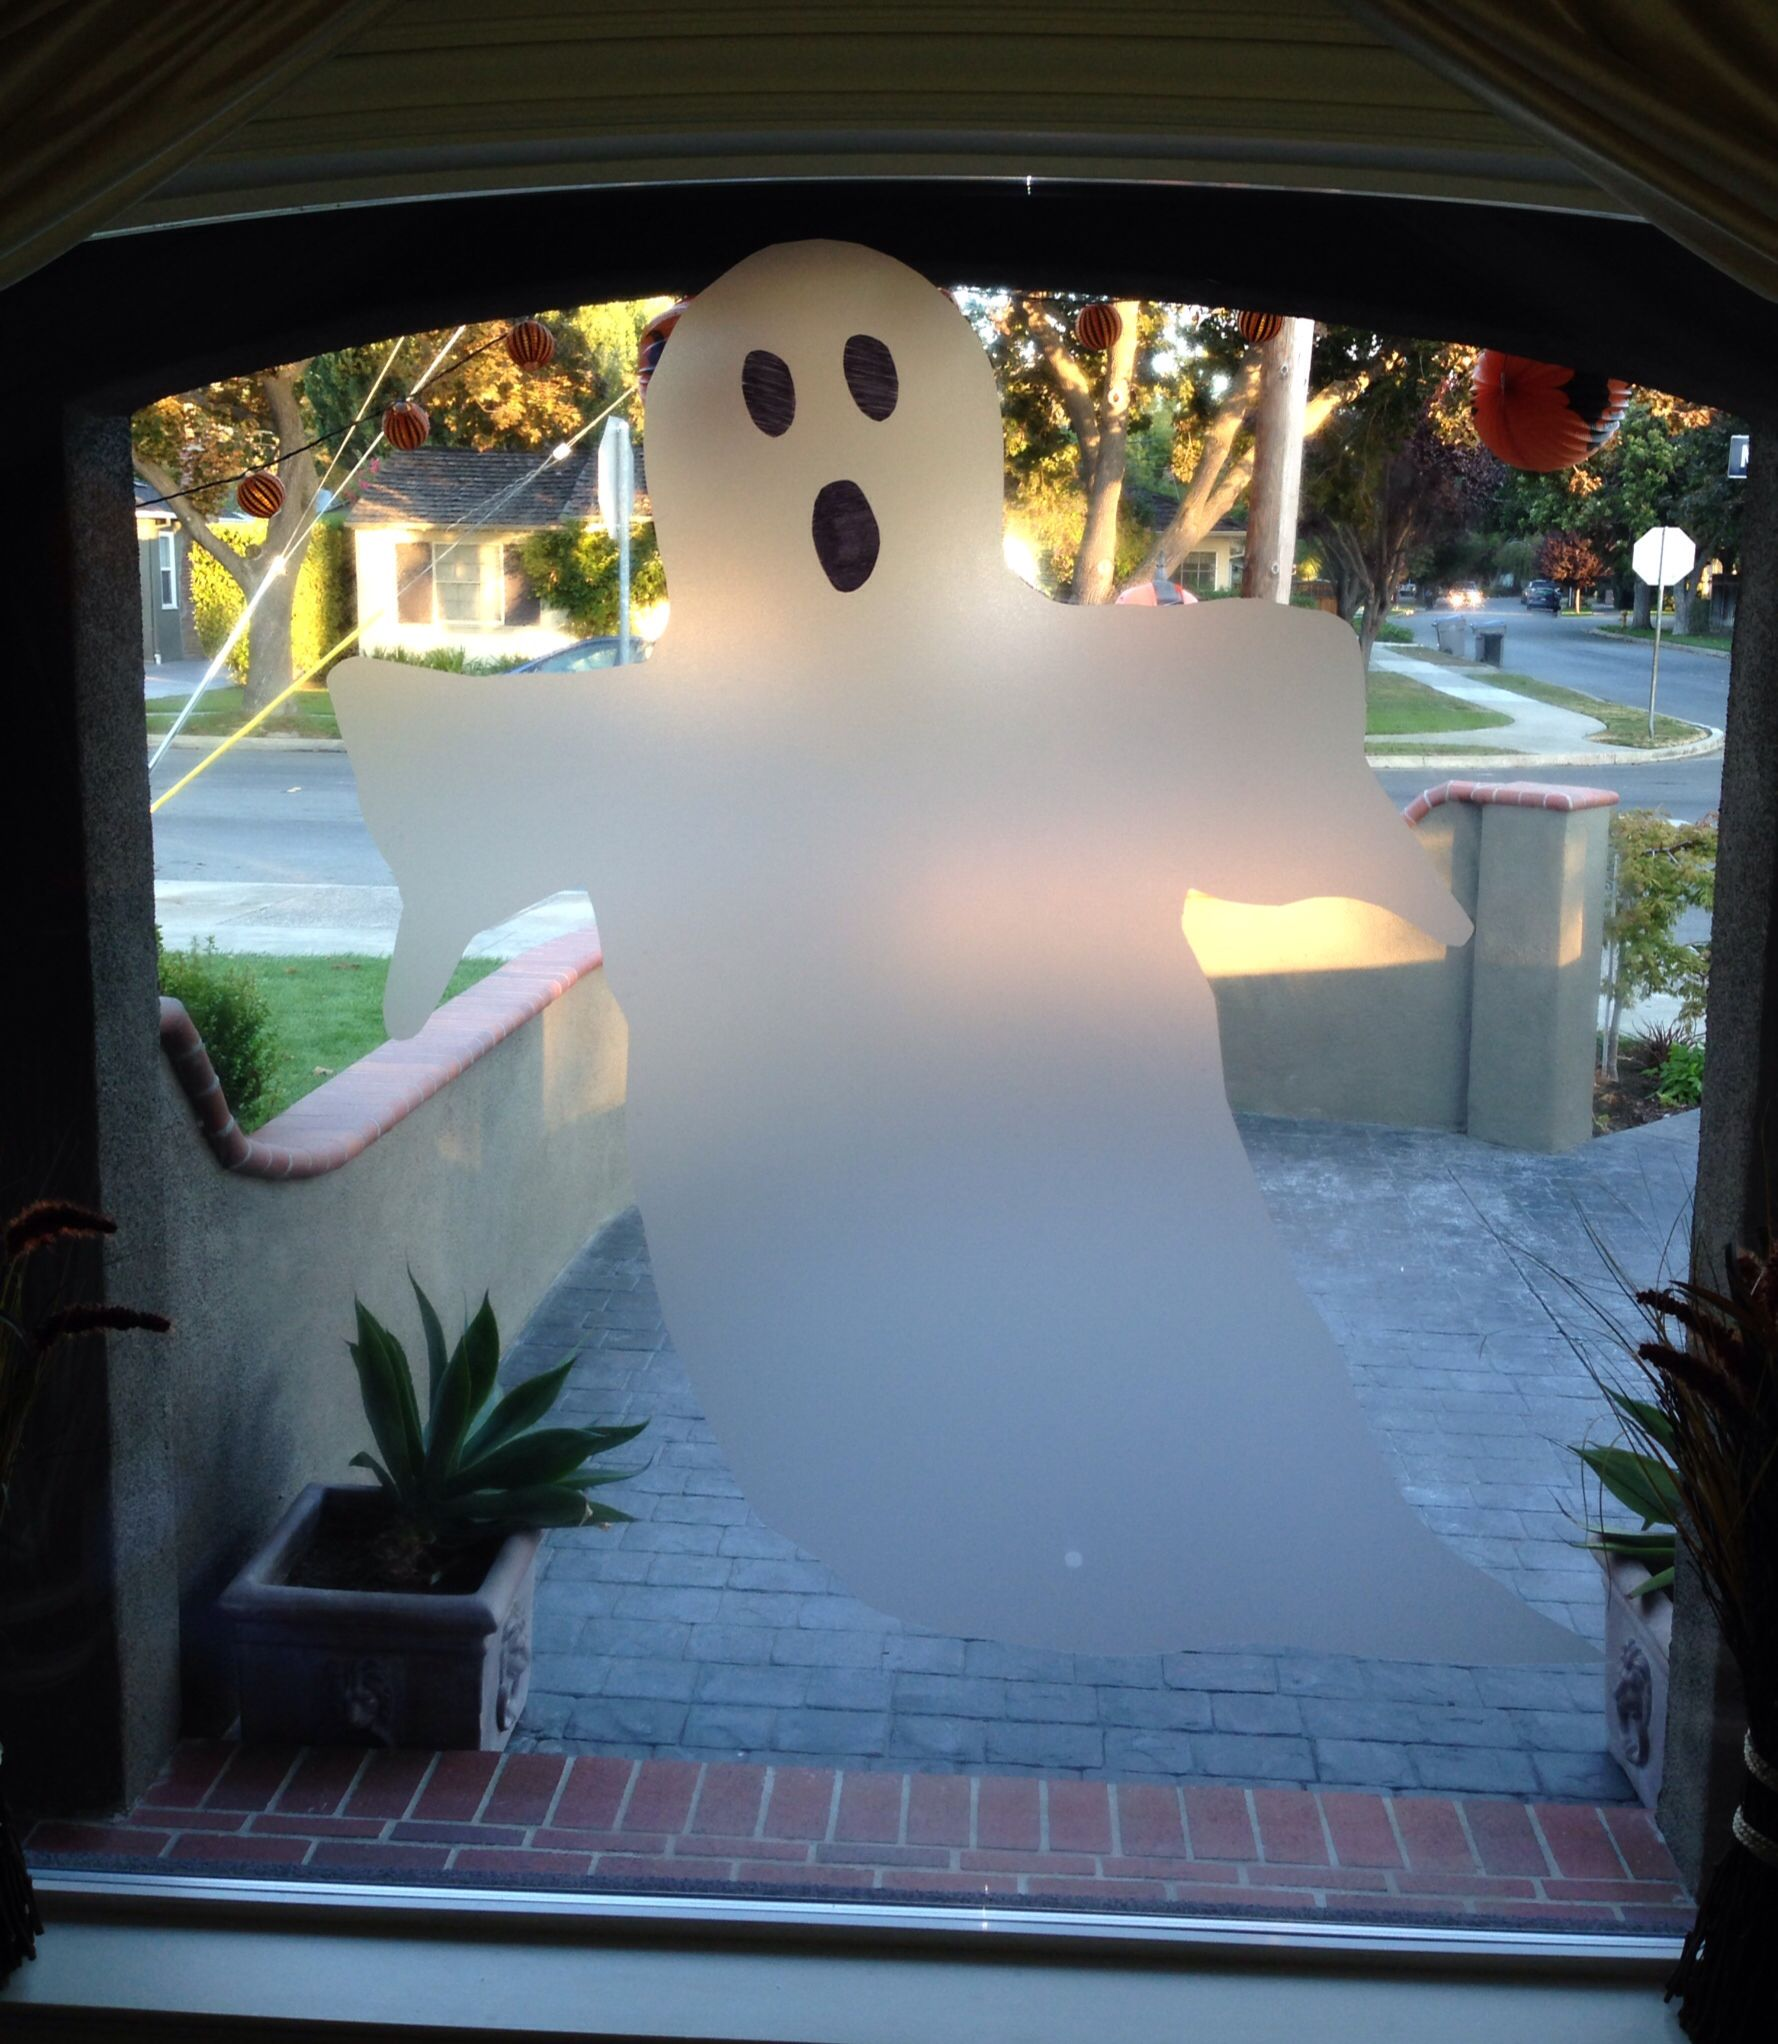 Halloween Ghost made from nonadhesive window cling film